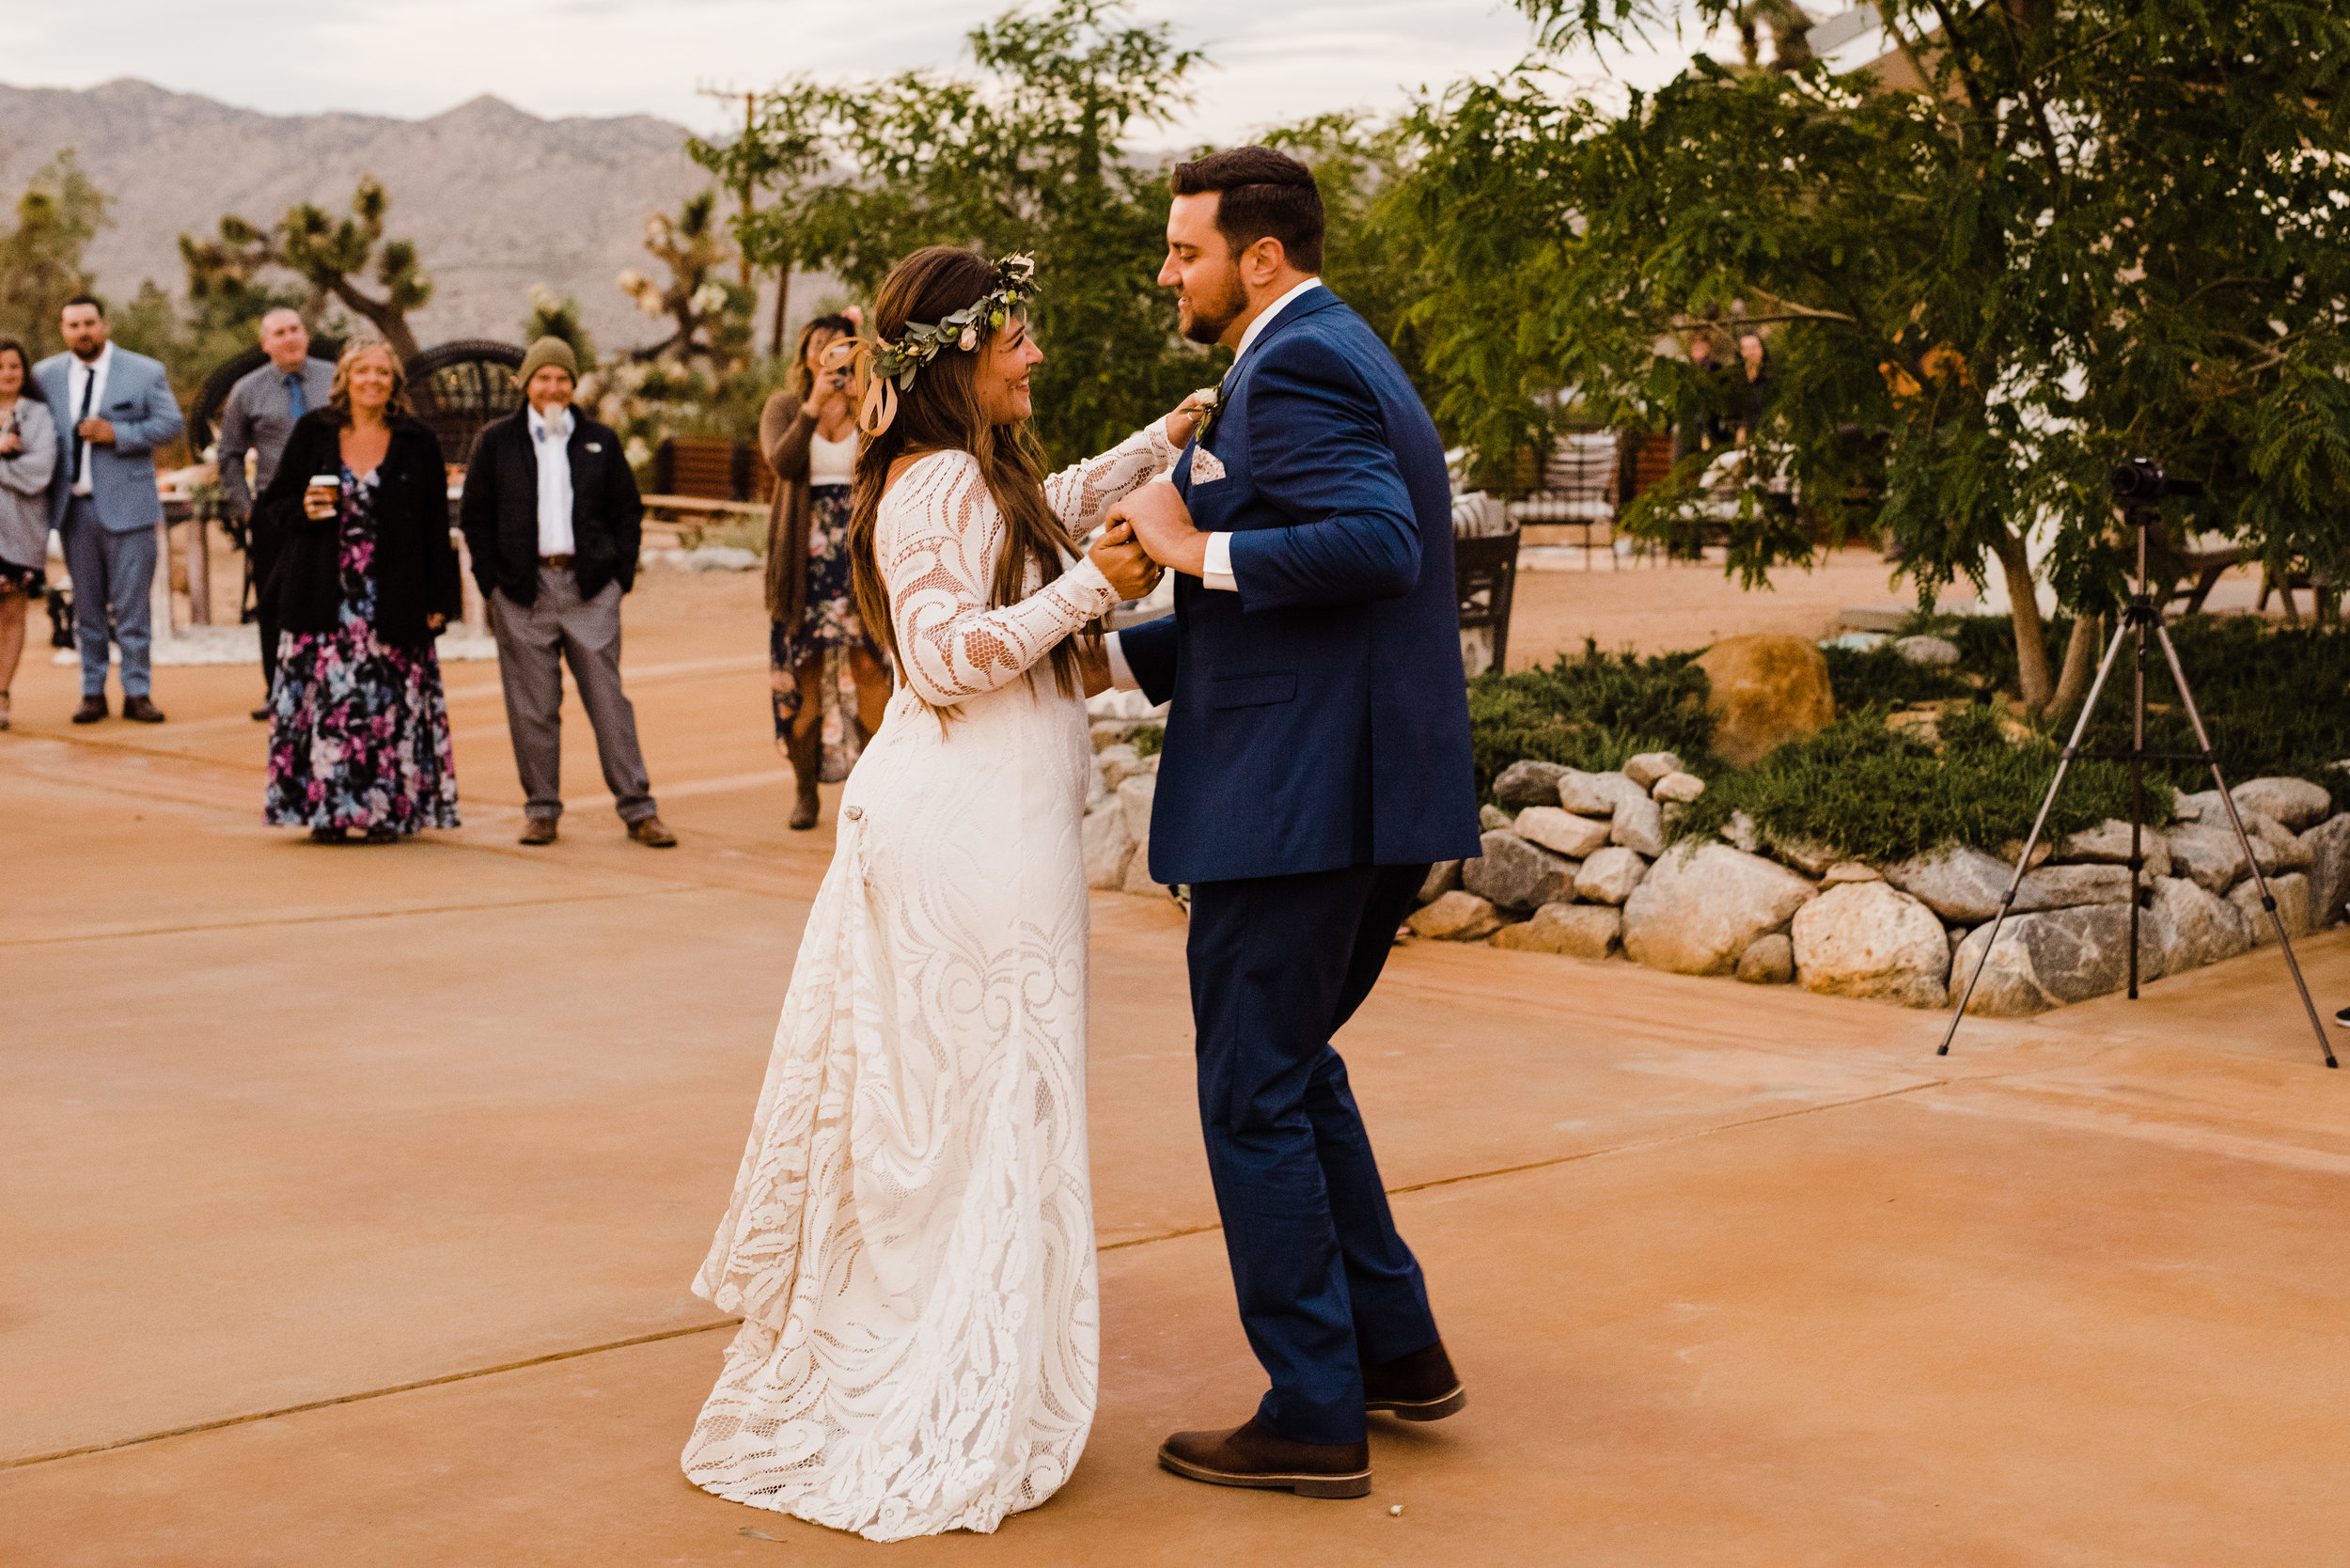 First dance as husband and wife at Tumbleweed Sanctuary Reception Area